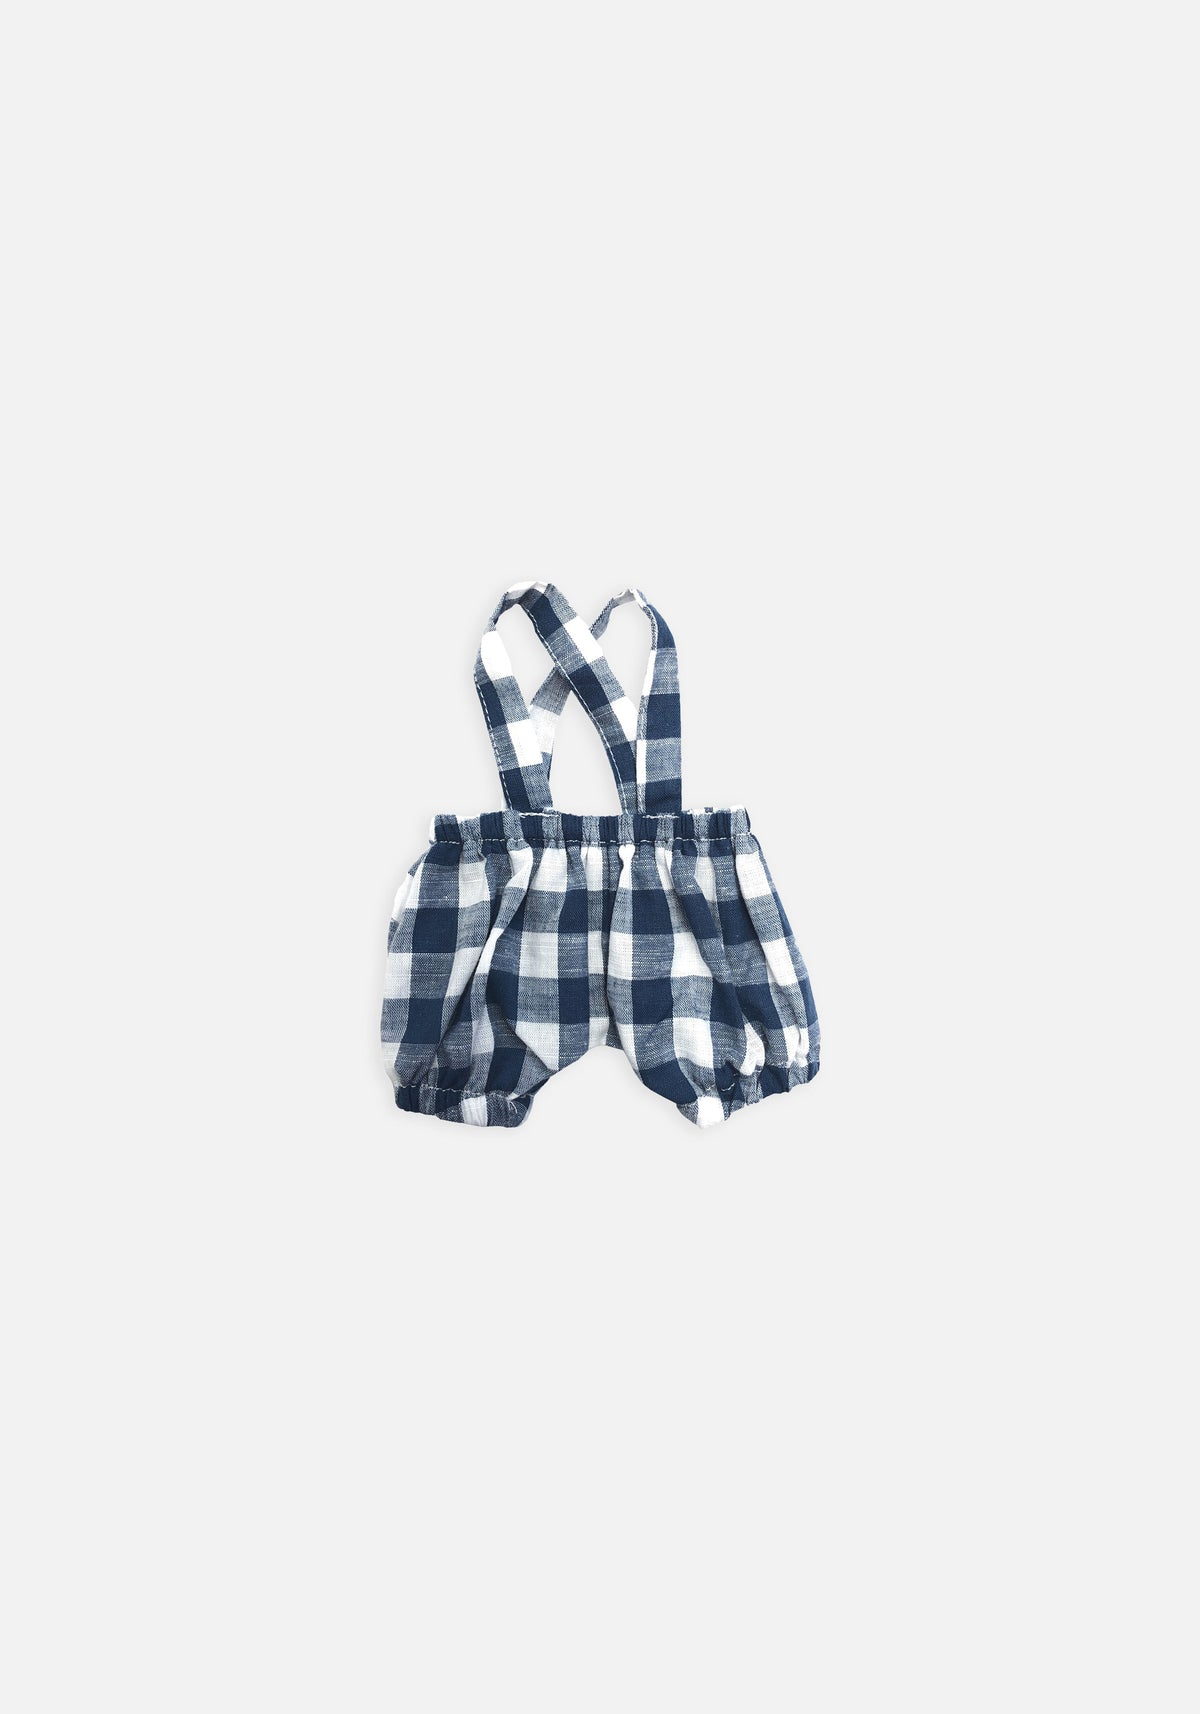 Large Softie Outfit - Navy Gingham Overalls - MIANN & CO